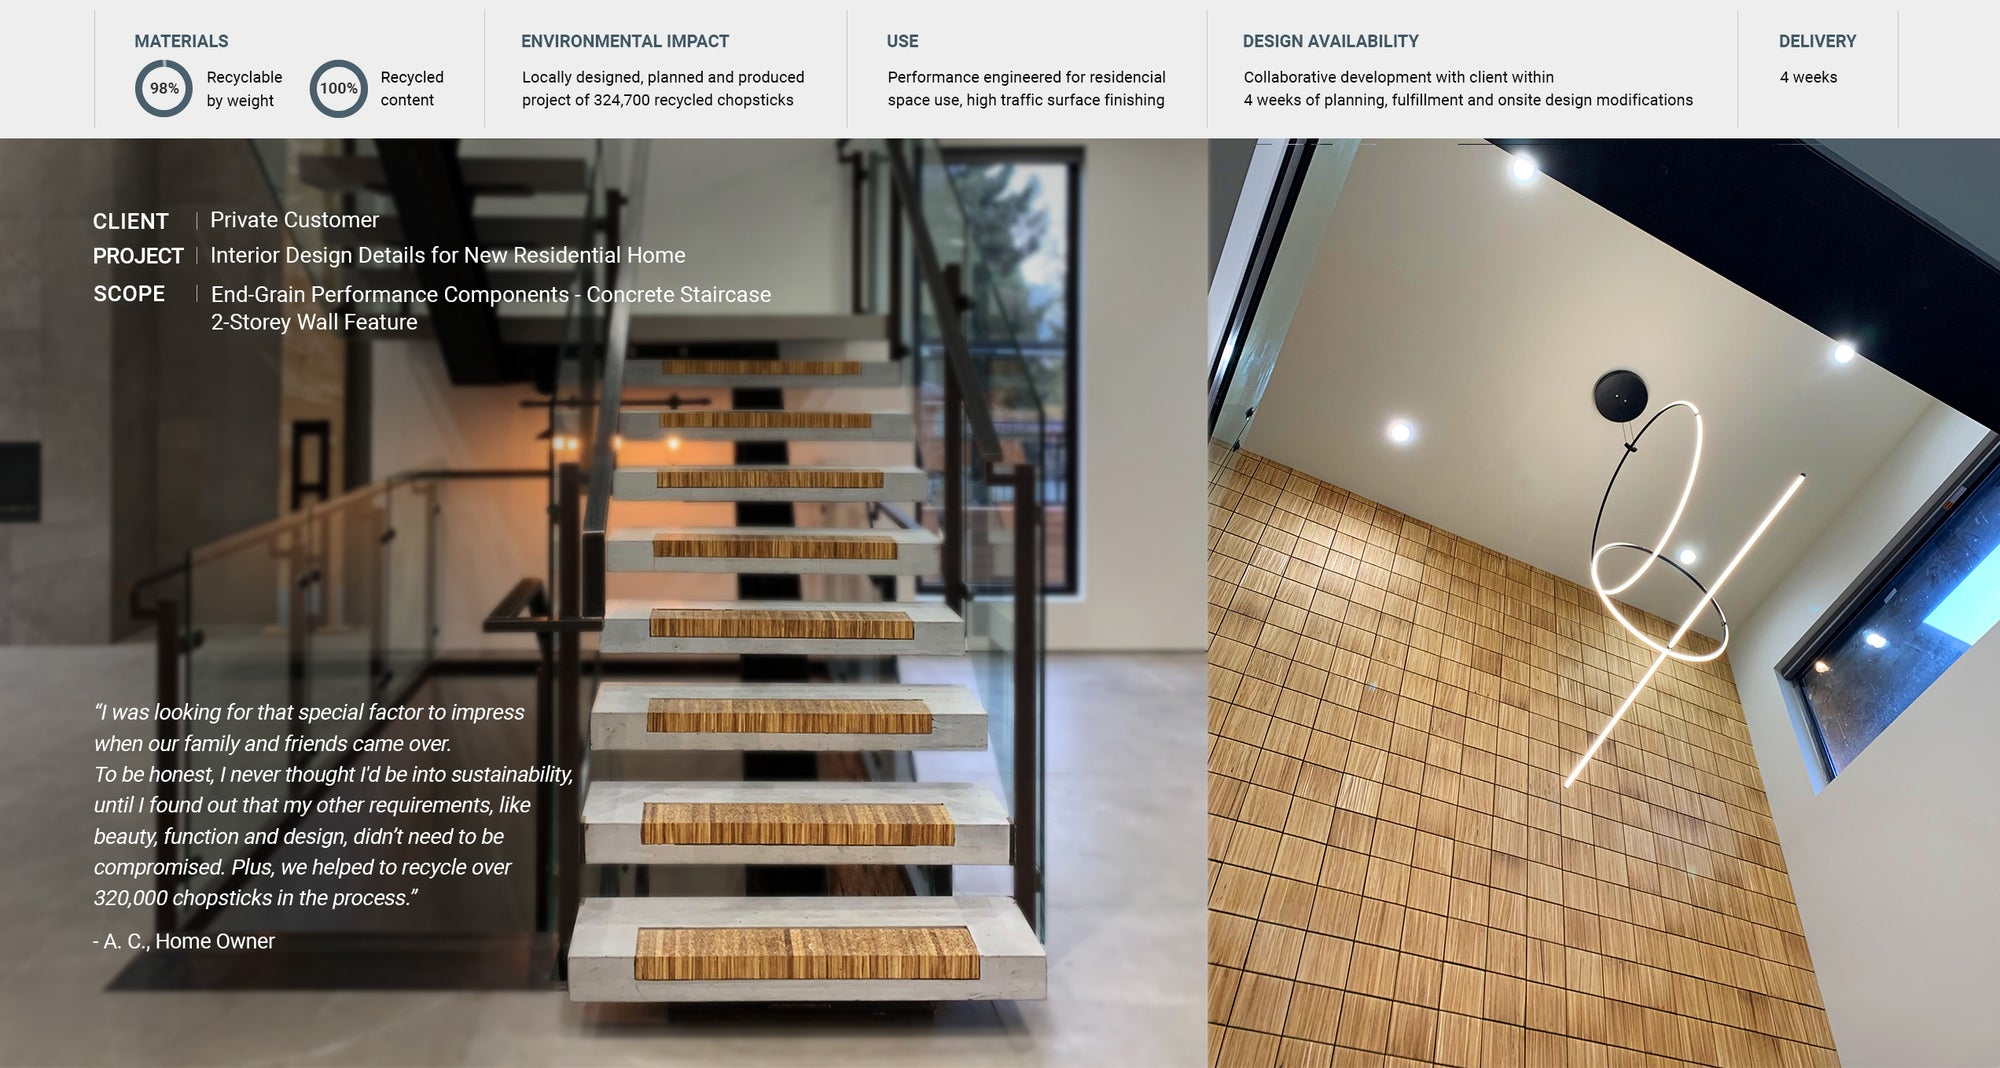 End-grain staircase and eco-friendly wall tiles for residential home